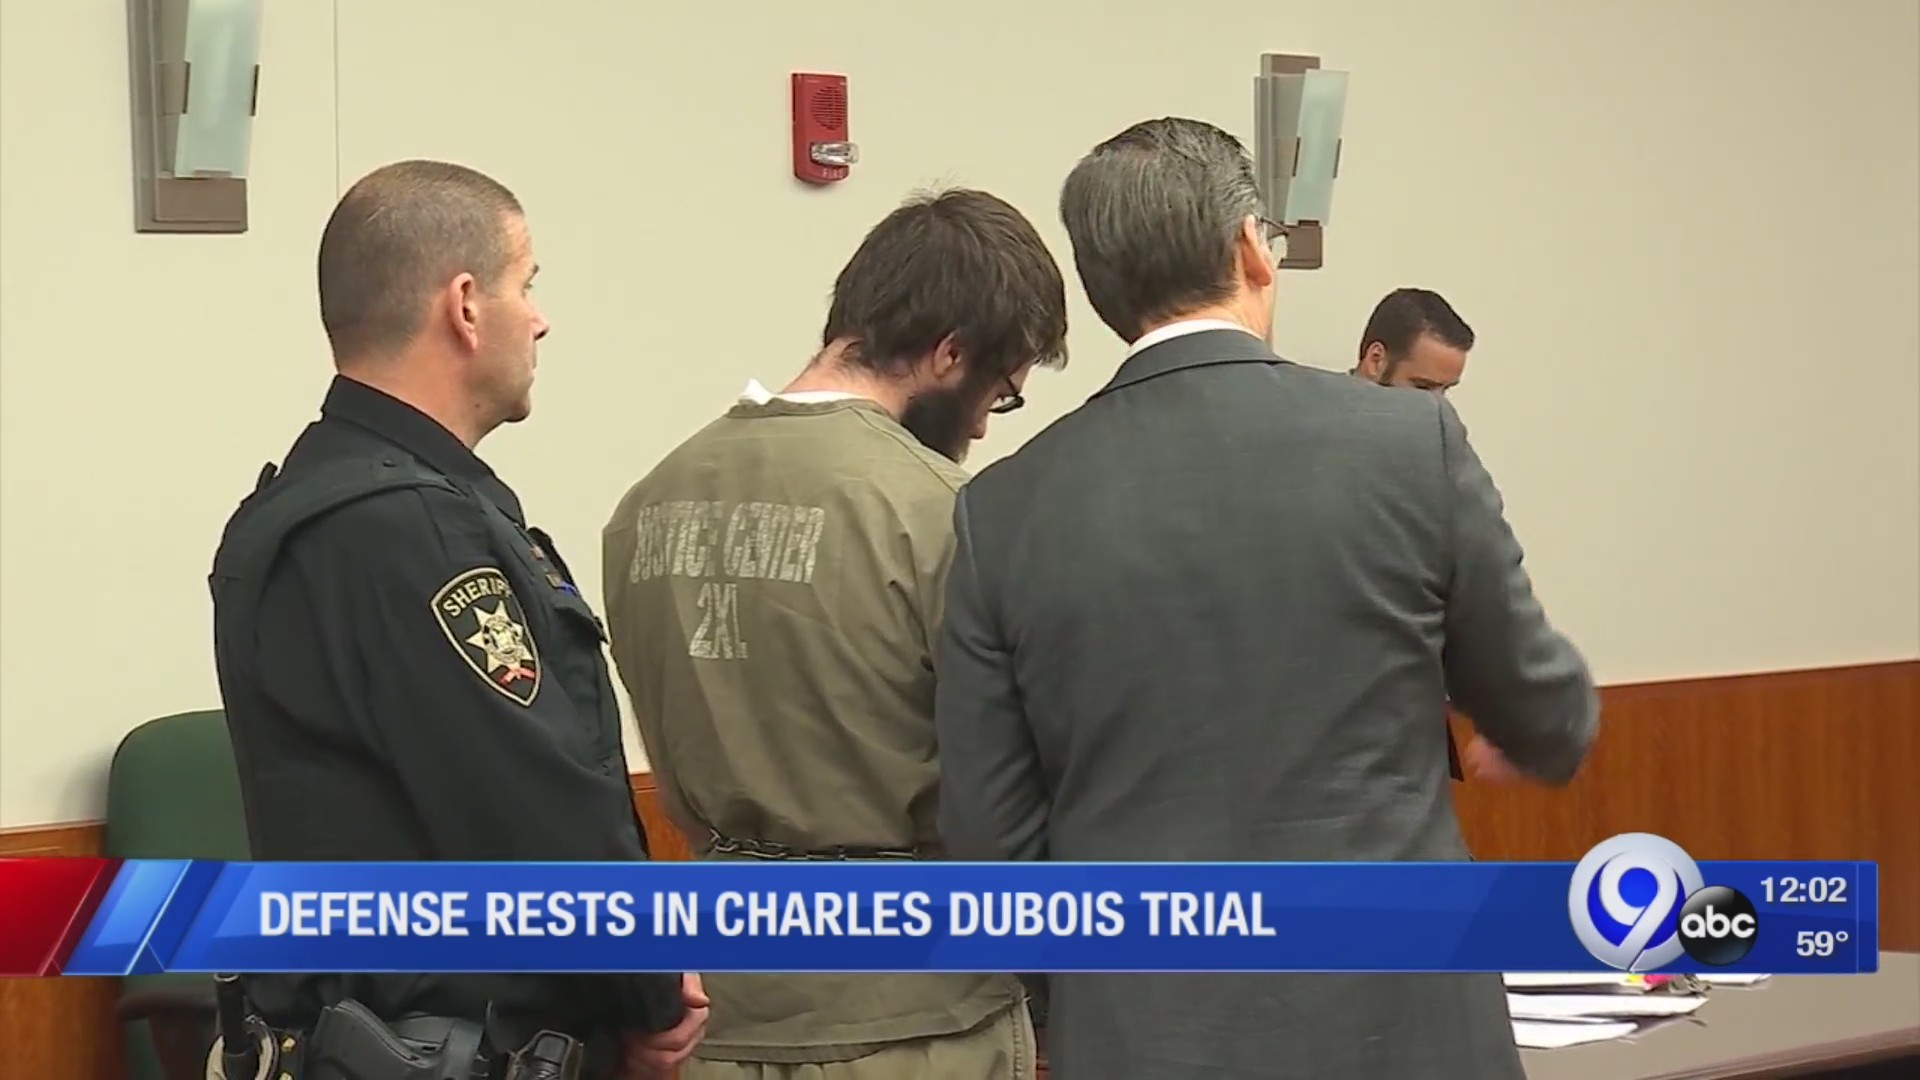 Defense_rests_in_Charles_DuBois_trial_0_20190503161759